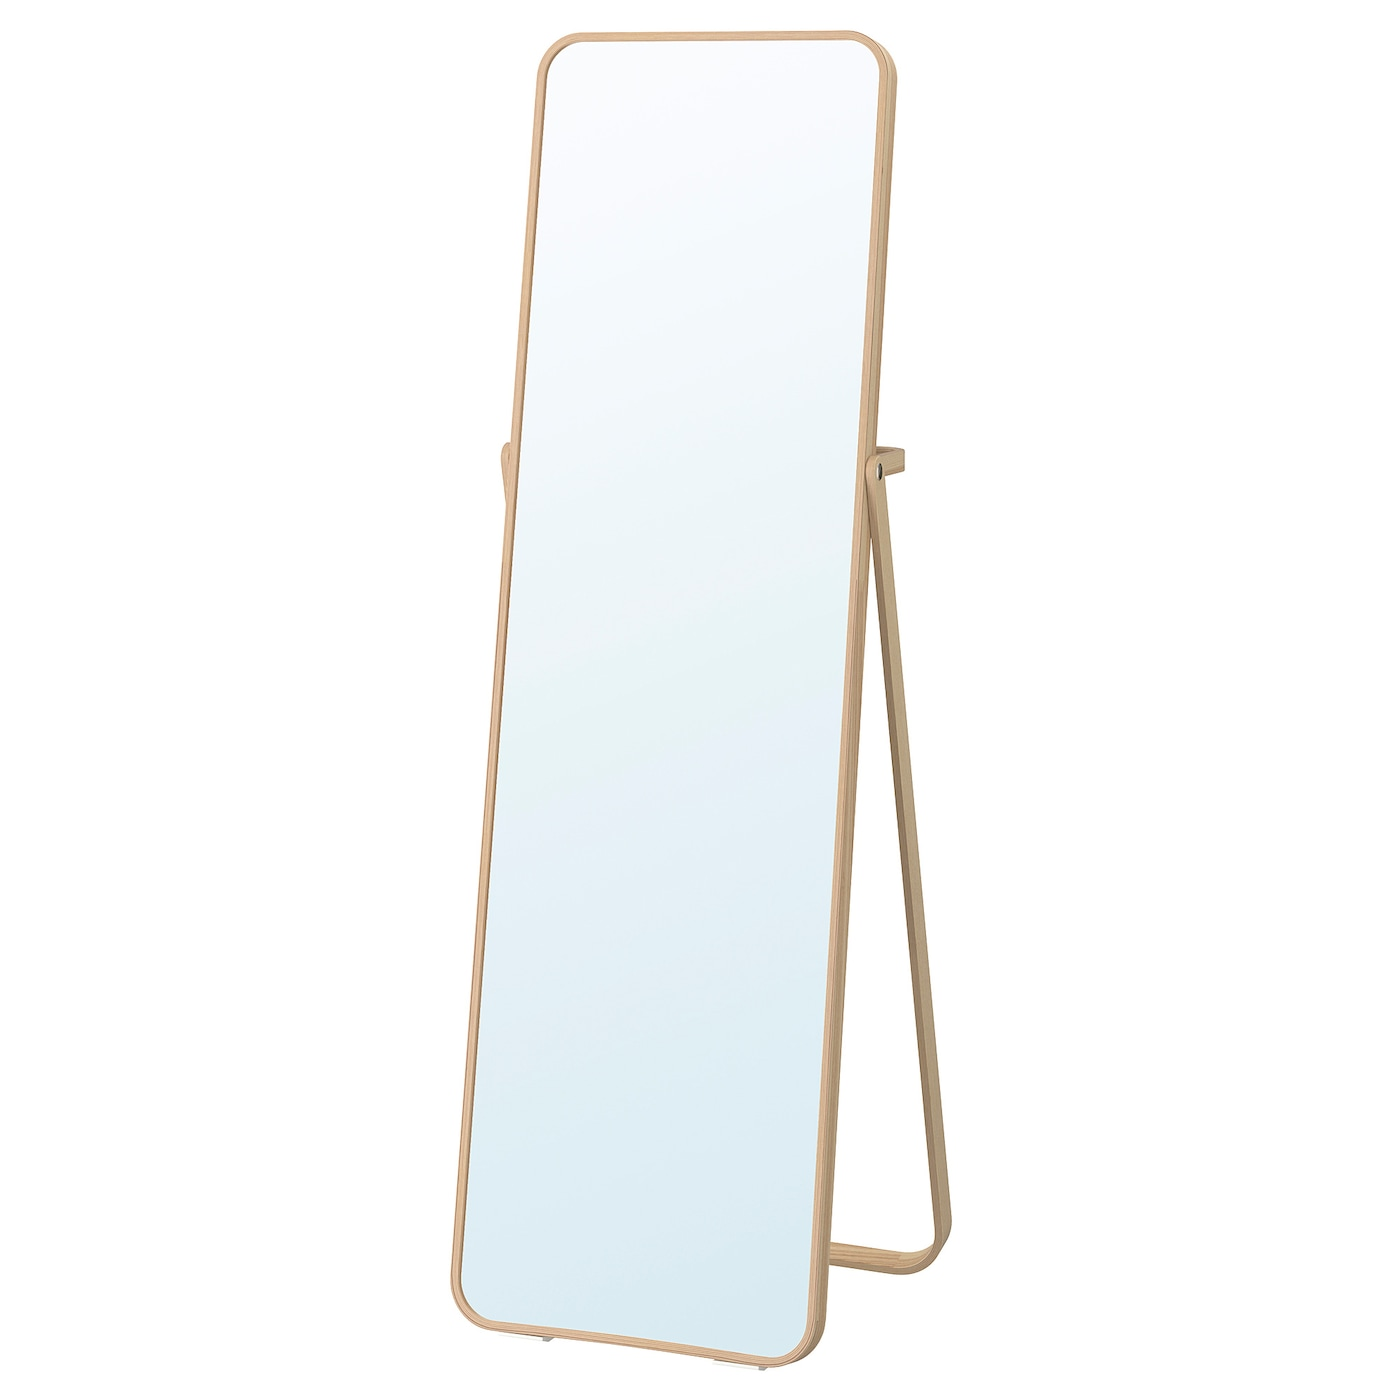 Ikea Ikornnes Standing Mirror Provided With Safety Film Reduces Damage If Gl Is Broken